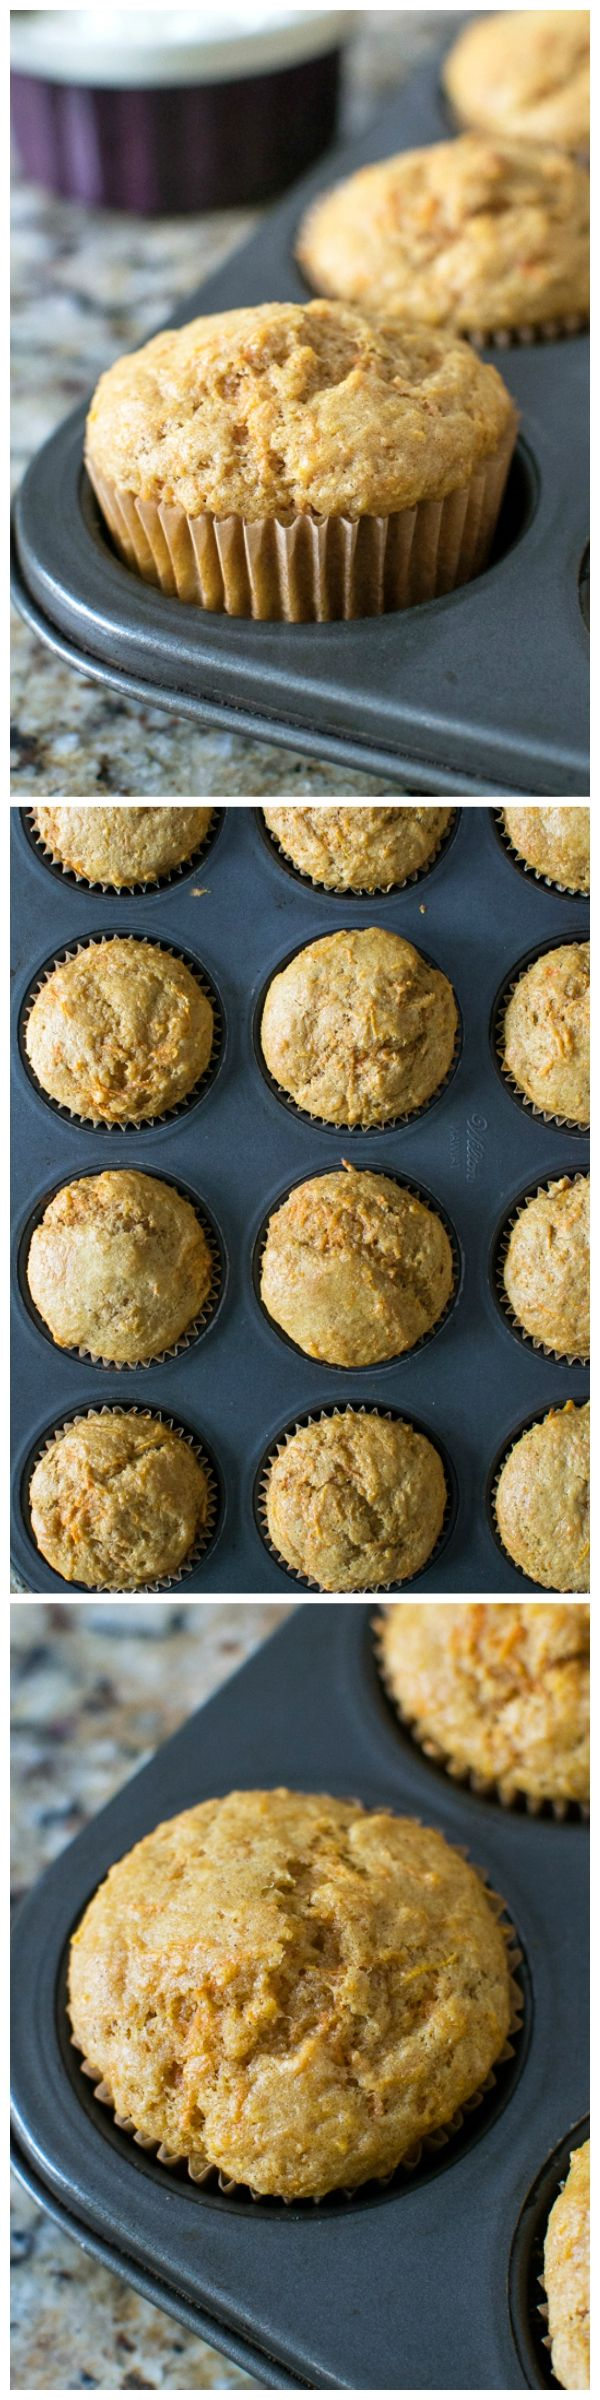 Carrot muffins made with whole wheat and yogurt – a great breakfast or snack you can eat on the run!